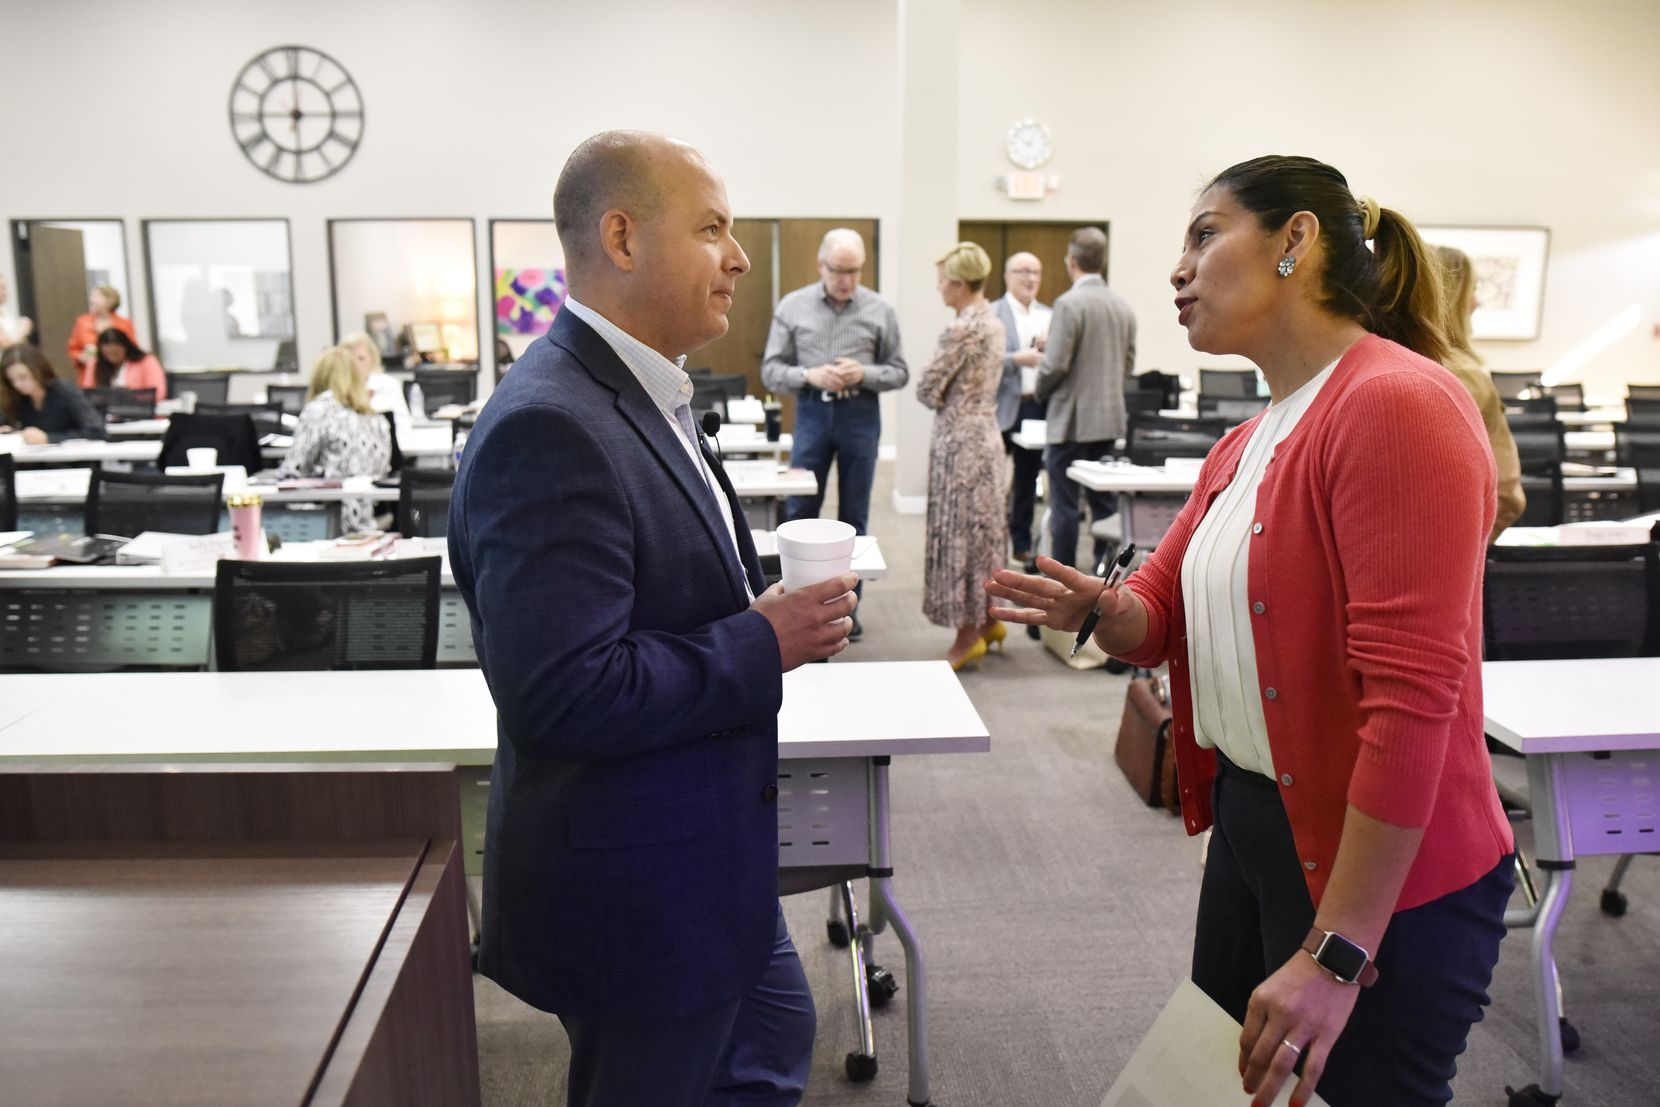 Sandra Diaz-Mills spoke with Ebby Halliday Cos. chief executive officer and president Chris Kelly during a break for new associate training at the Ebby Marketing and Education Center in September.